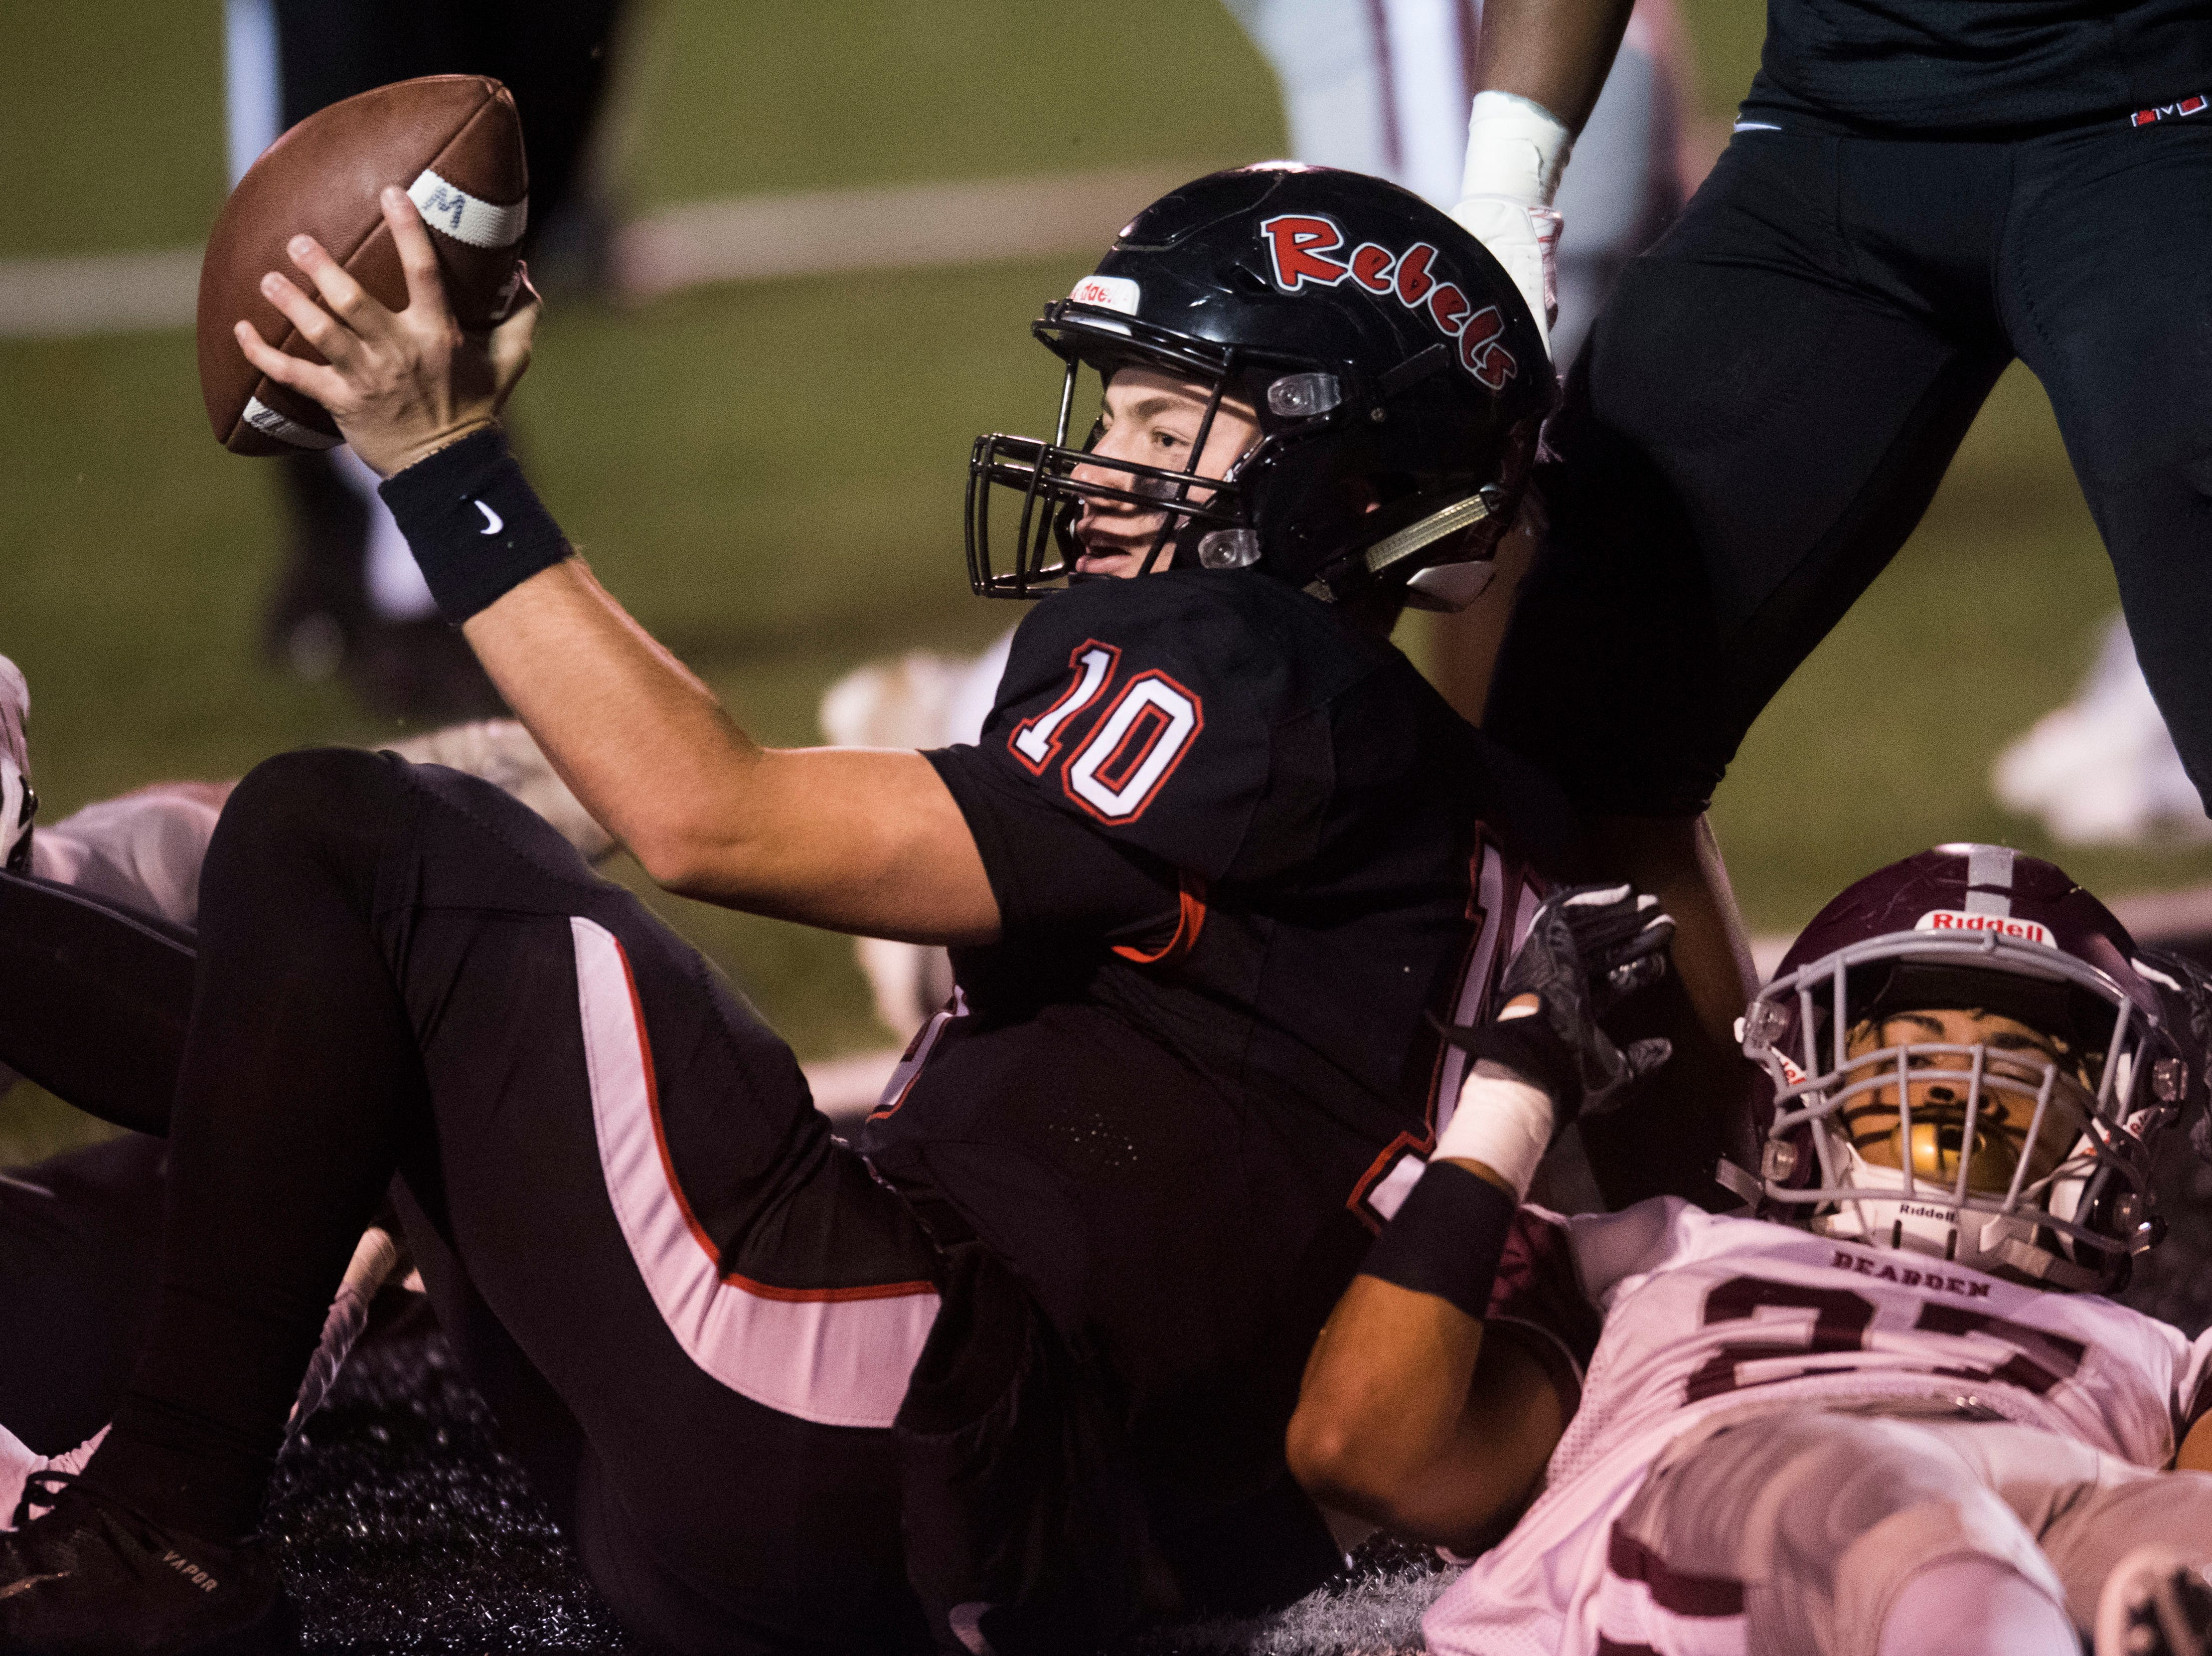 2.Maryville(11-1) beat Science Hill, 42-7